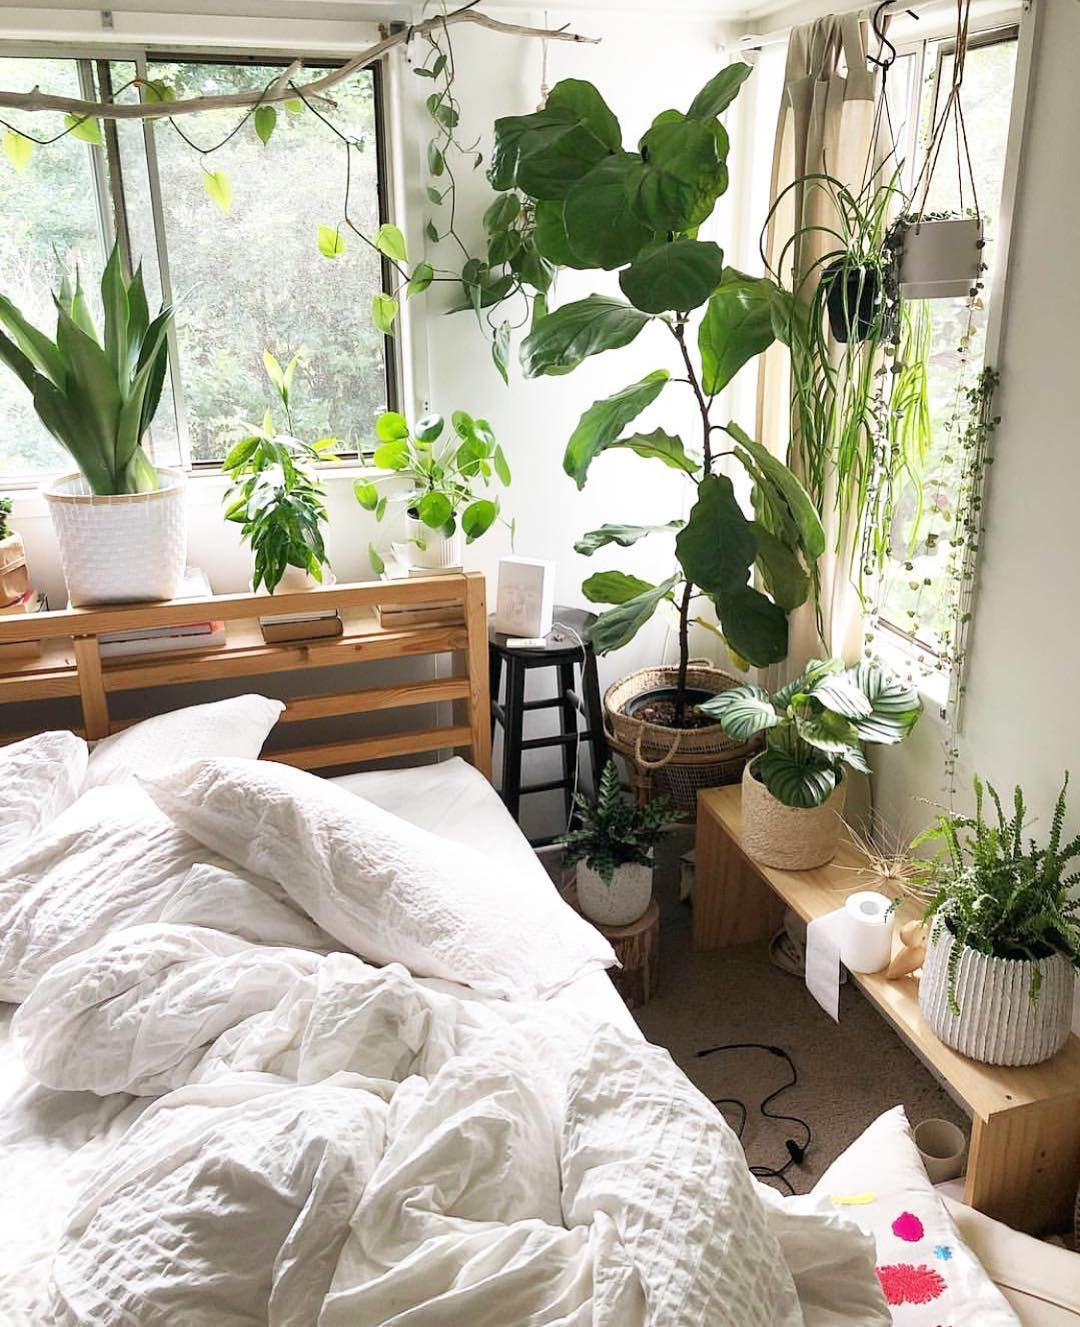 """The Potted Jungle on Instagram """"Gimme alllll the snuggles"""